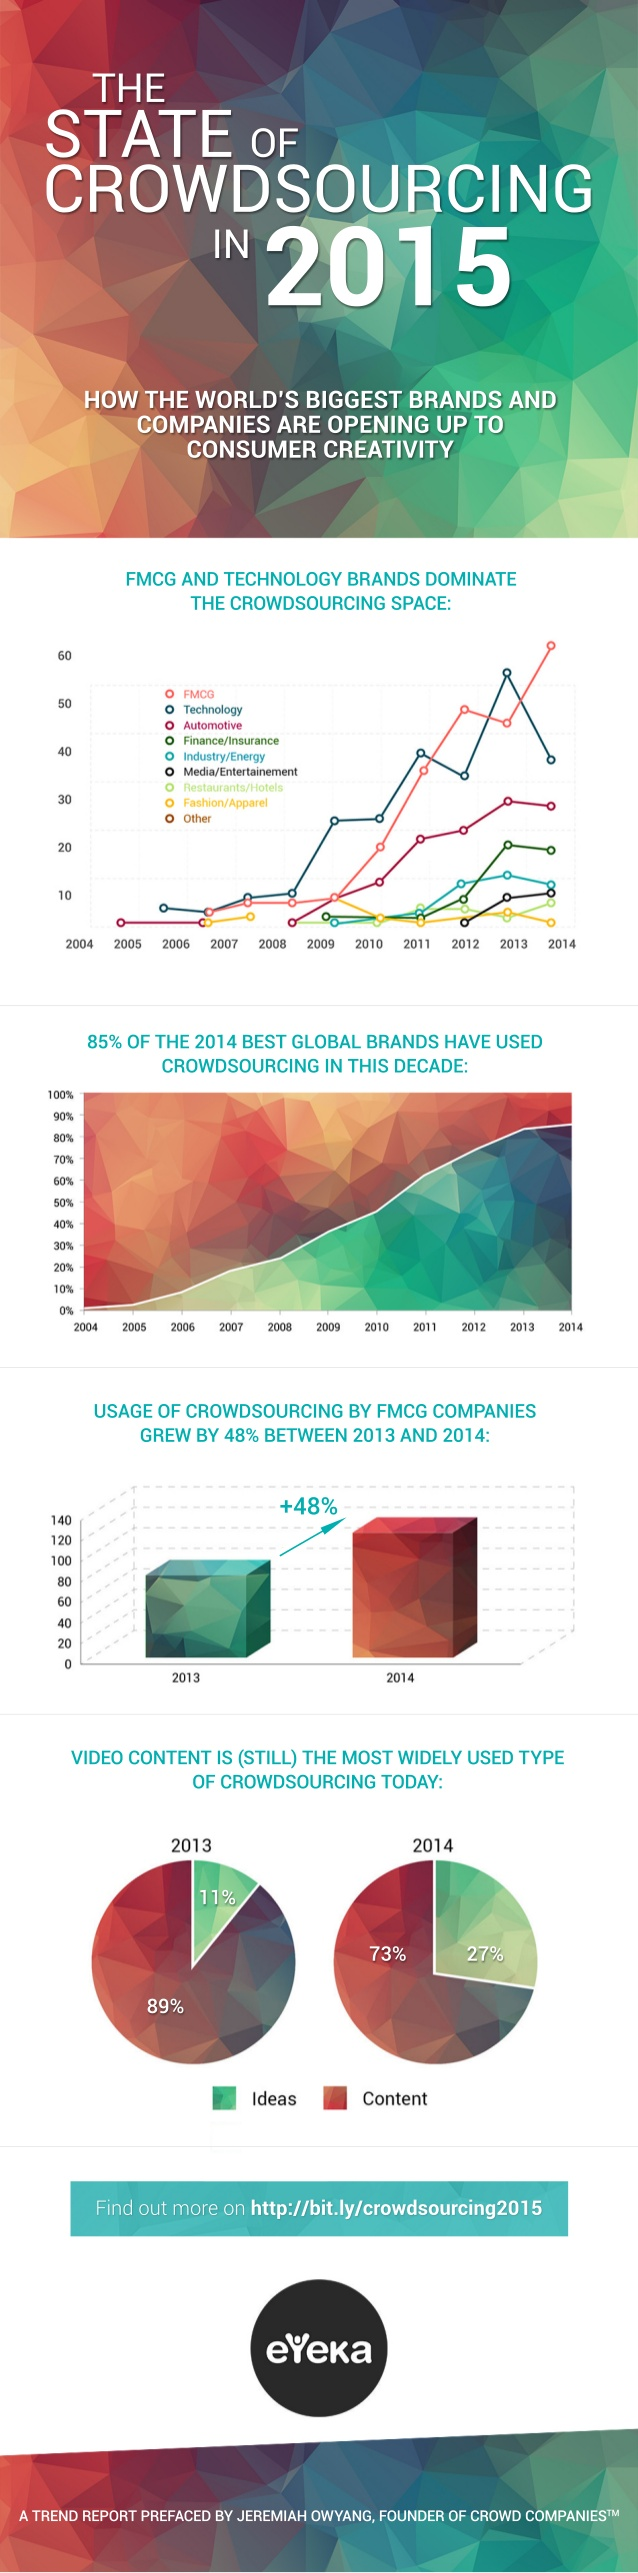 El panorama del Crowdsourcing en 2015